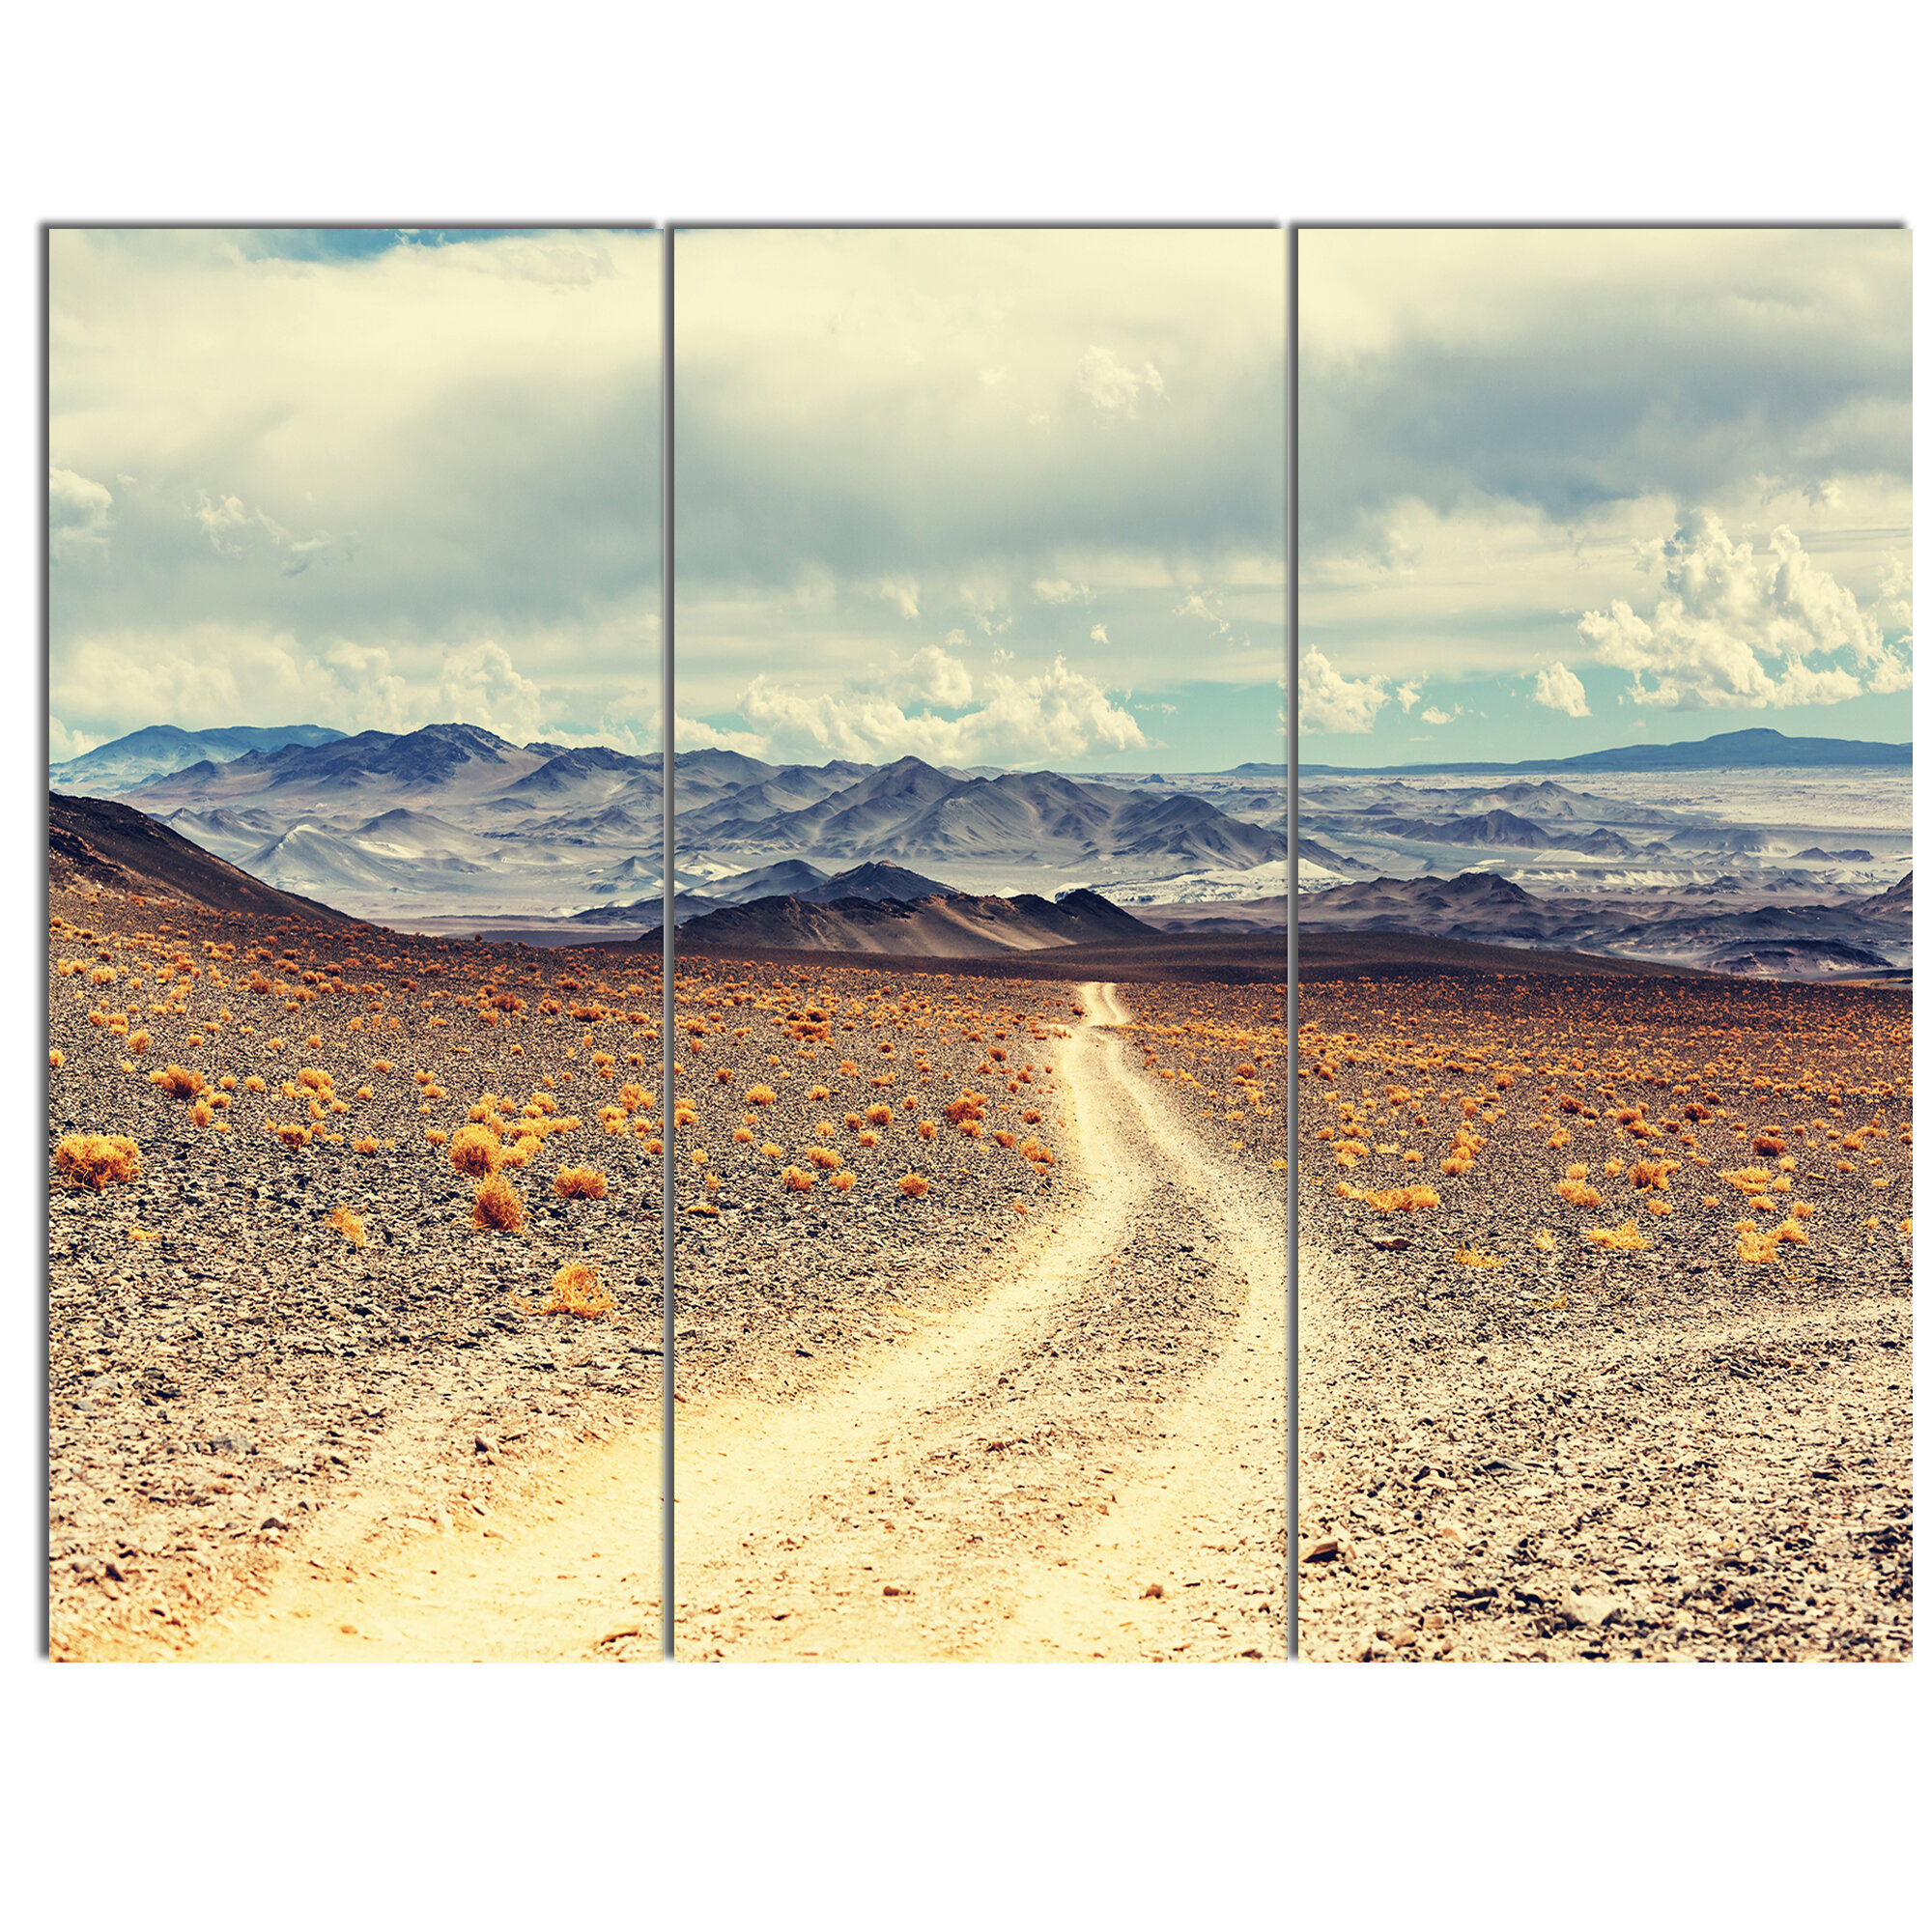 Designart Dry Grass And Mountains In Argentina 3 Piece Photographic Print On Metal Set Wayfair